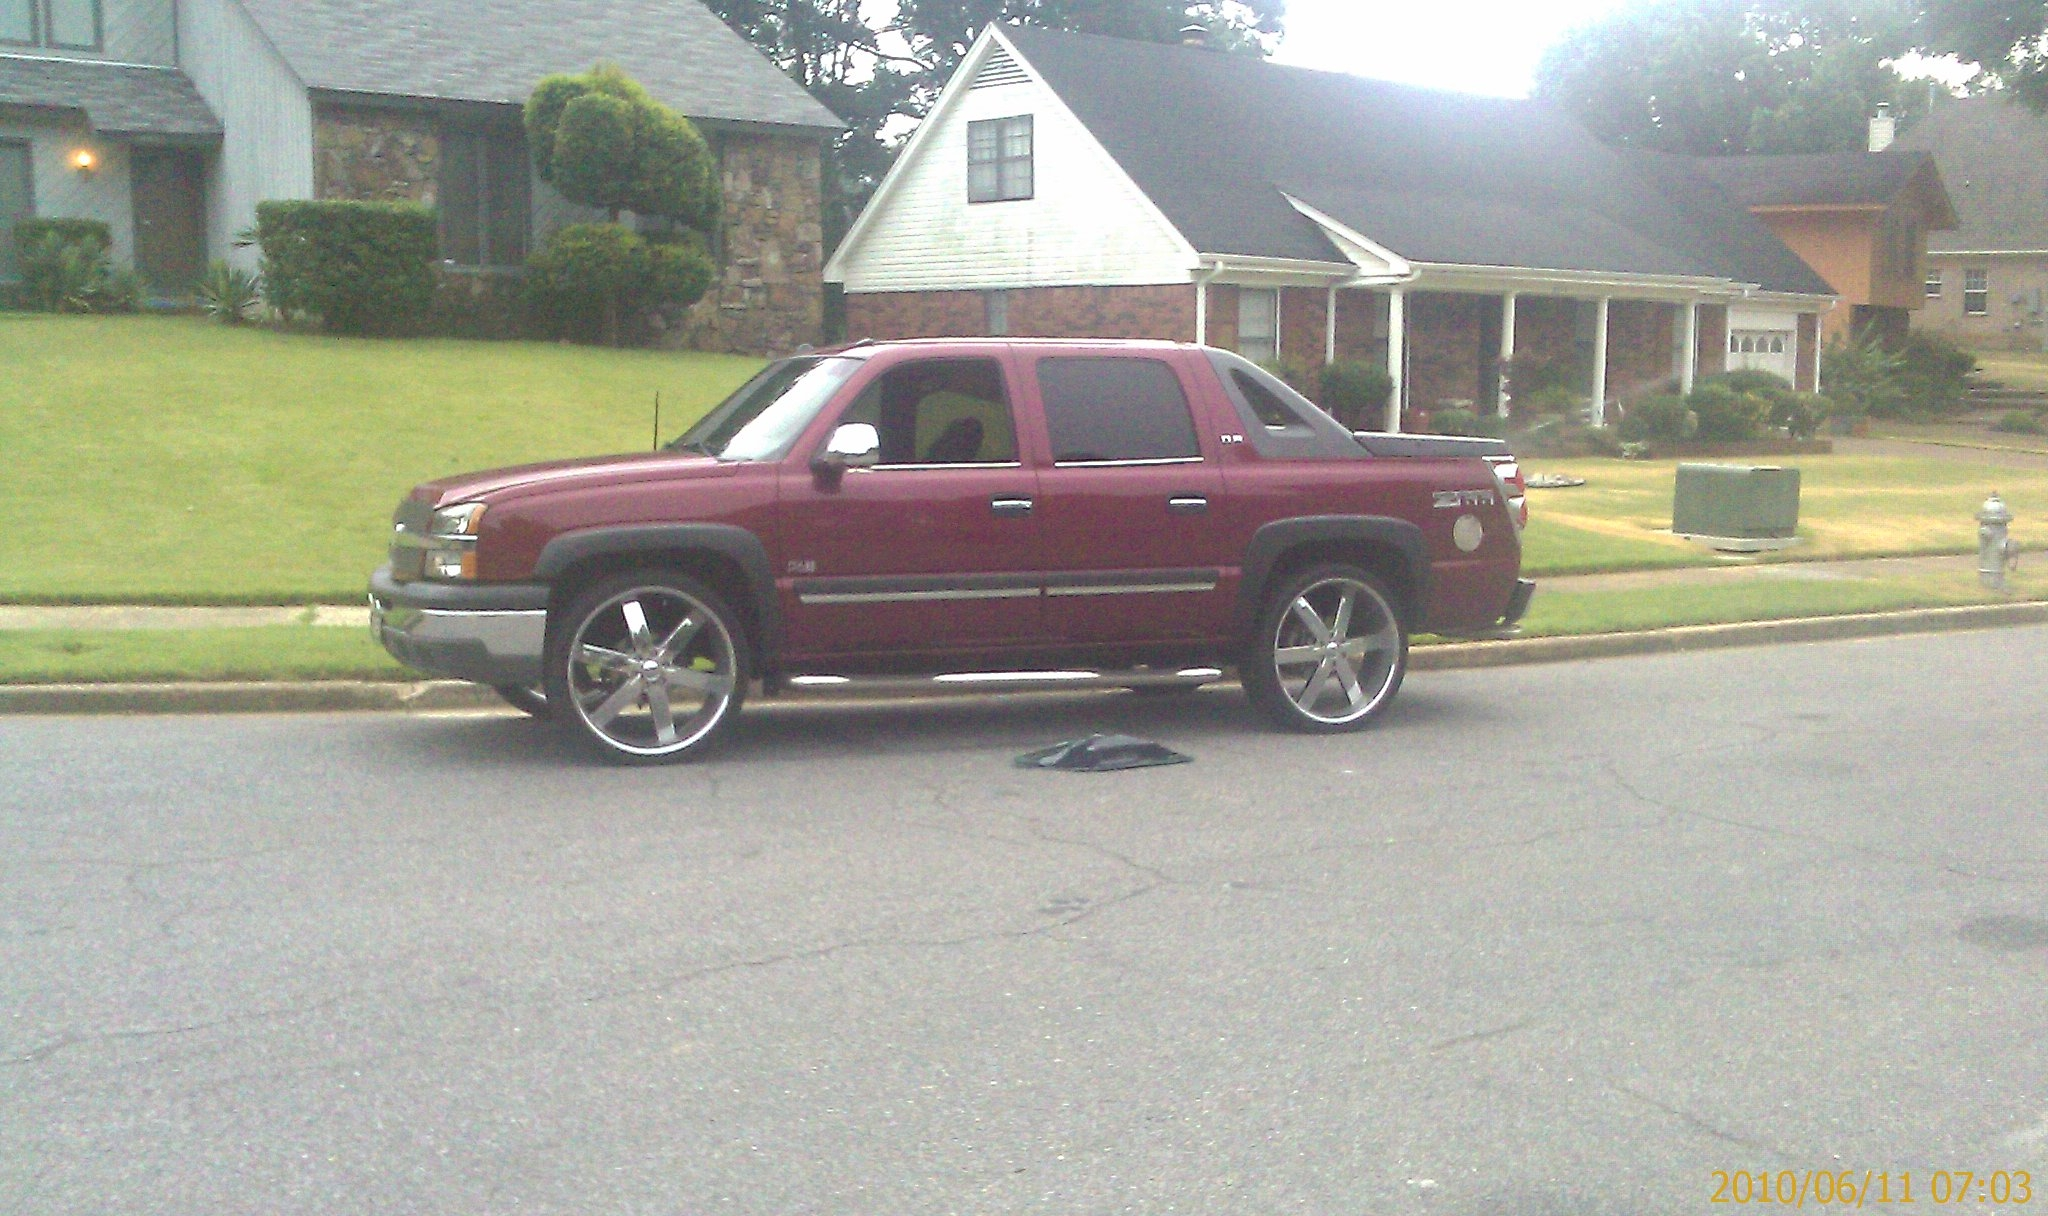 cashboy0102 39 s 2004 chevrolet avalanche in memphis tn. Black Bedroom Furniture Sets. Home Design Ideas